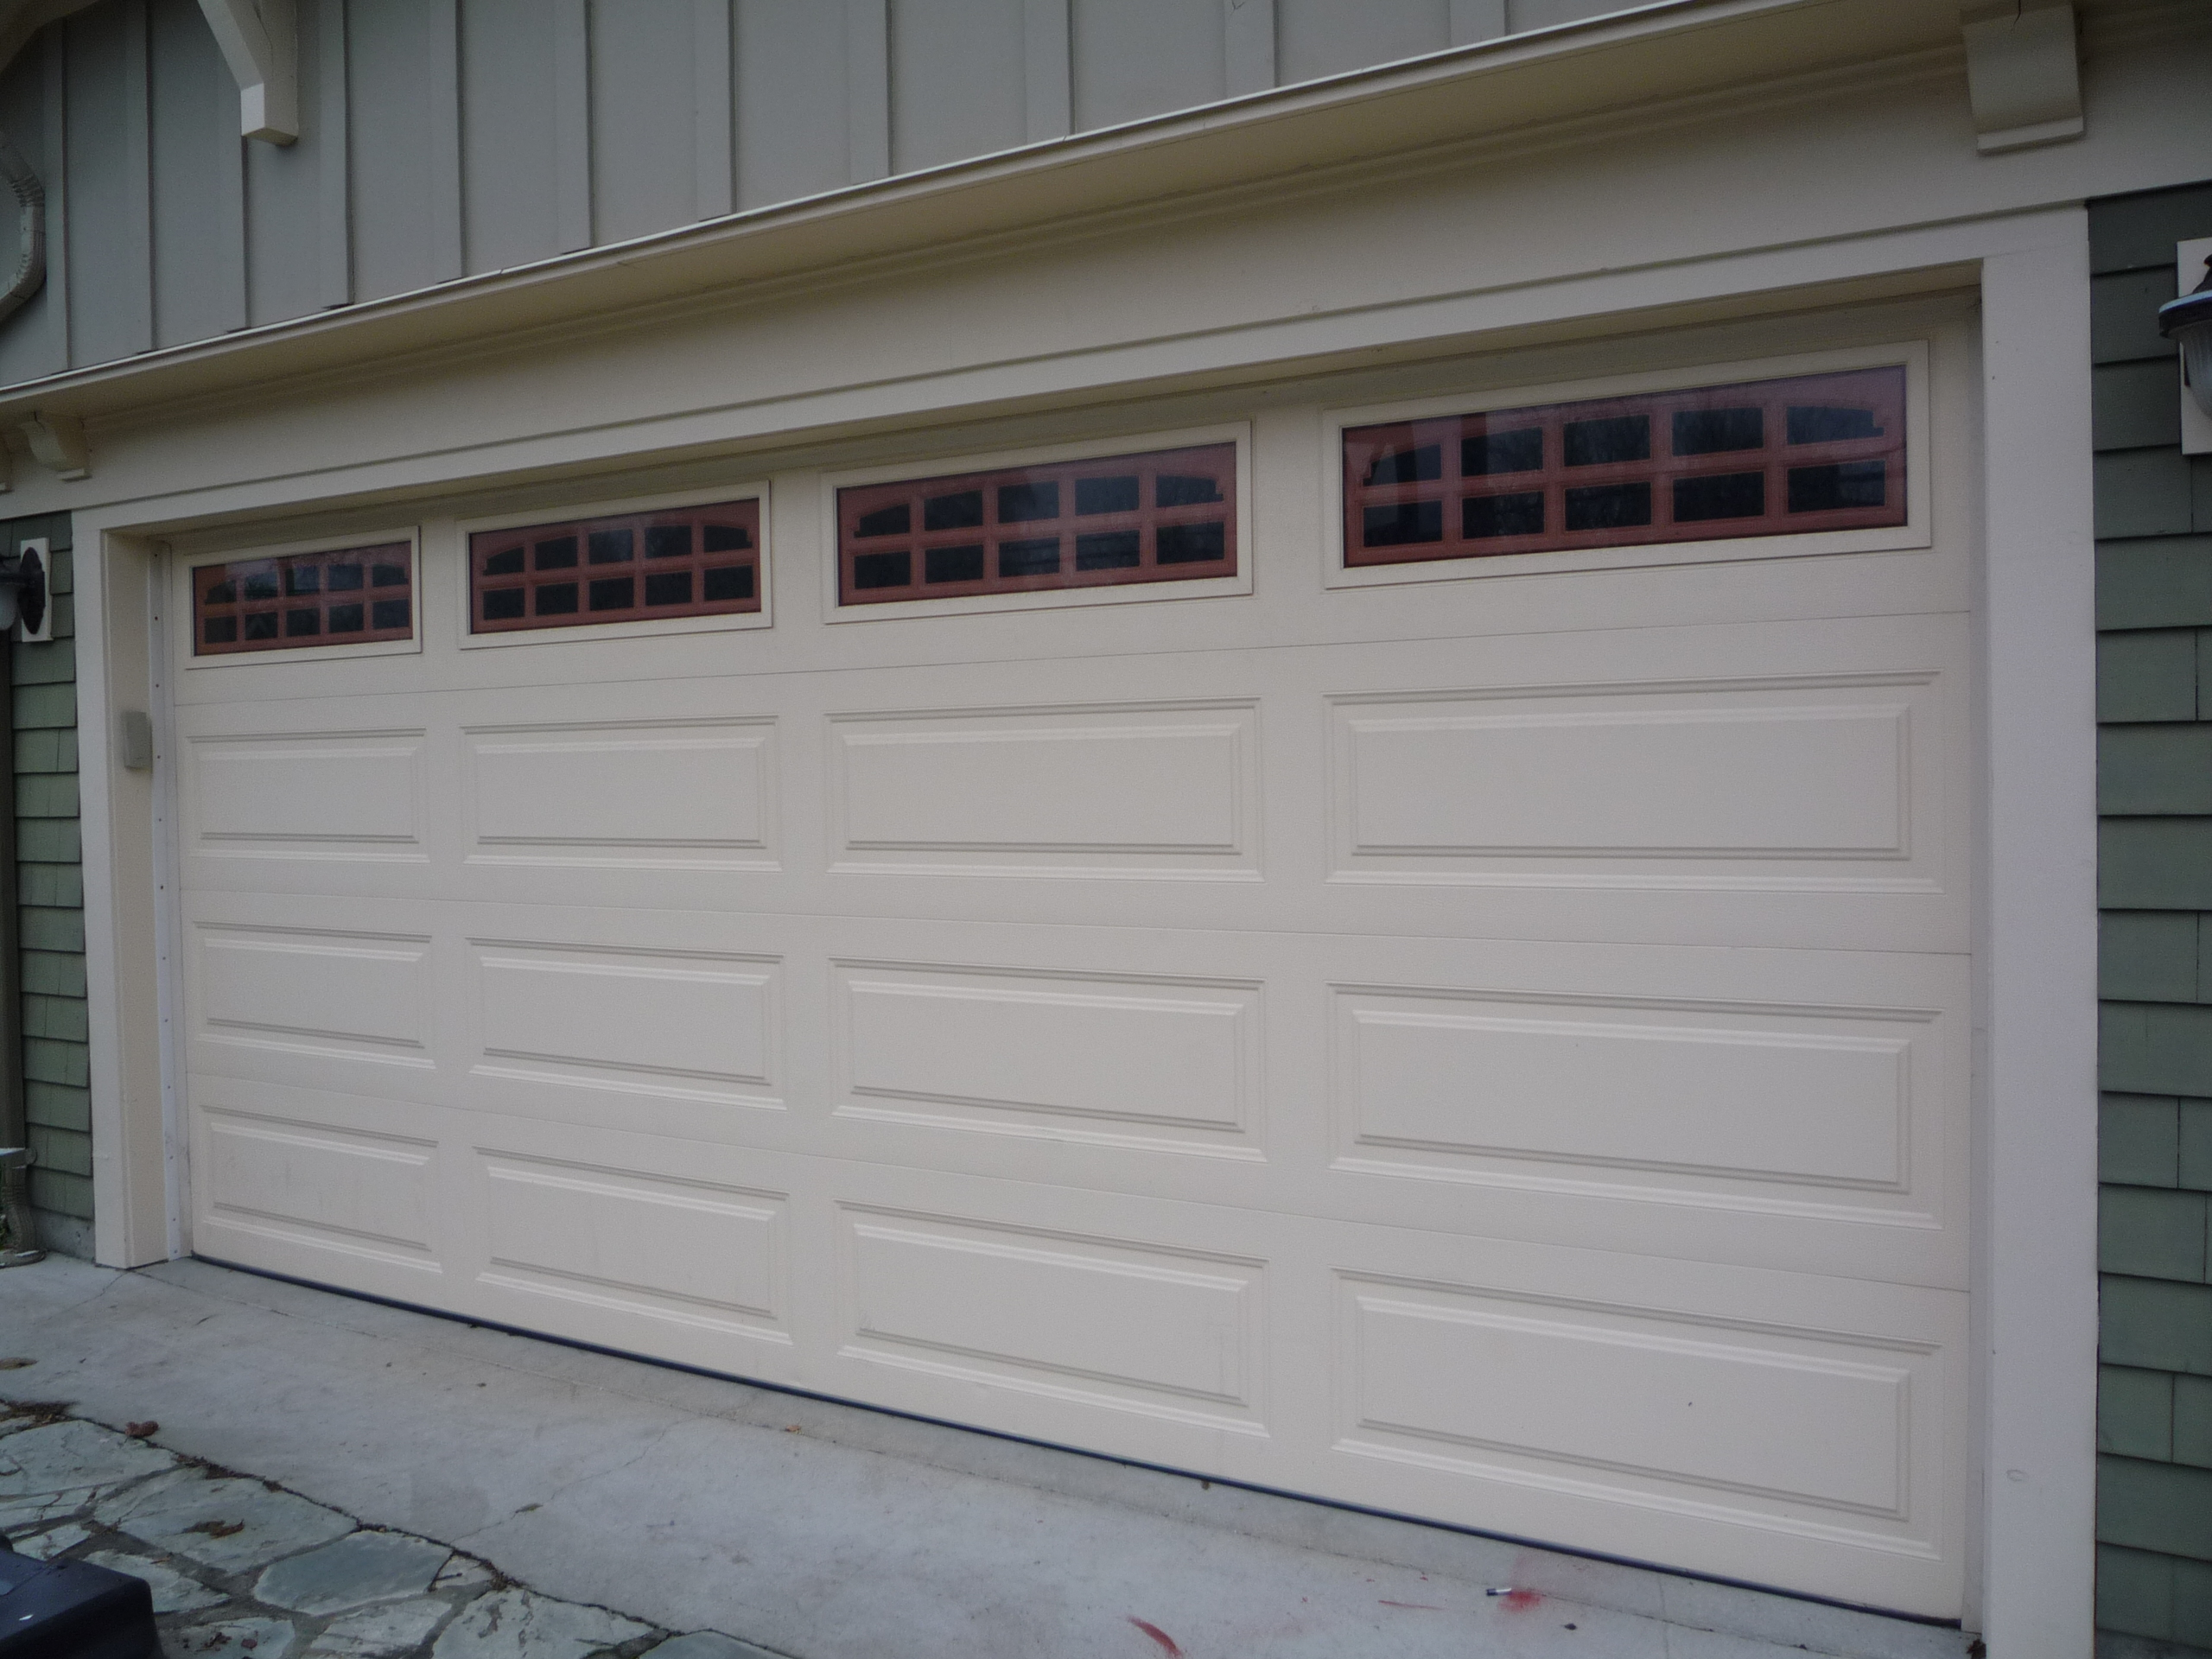 1920 #594F41 PC18 Clopay Premium Series Long Panel With 608 Glass wallpaper Clopay Steel Garage Doors 37752560